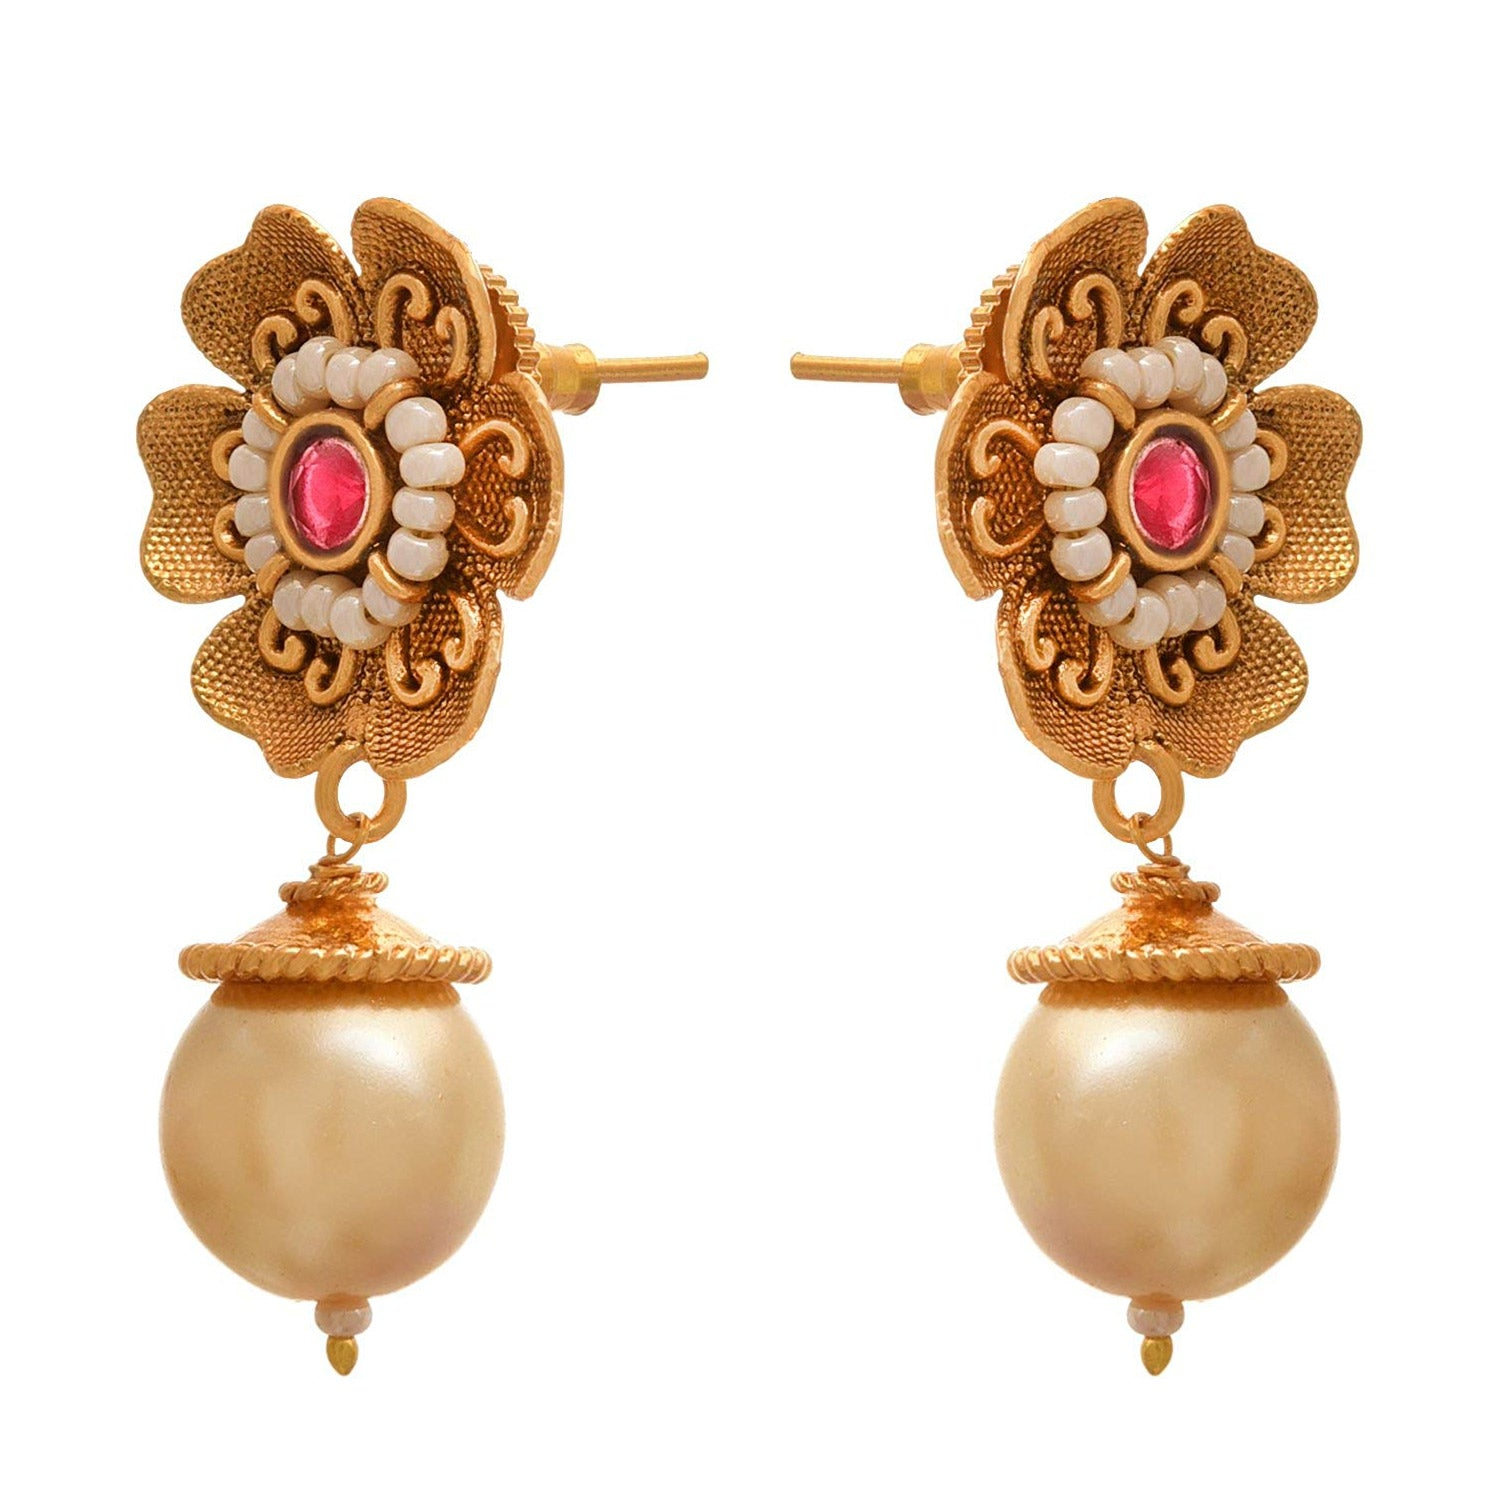 JFL - Traditional Ethnic One Gram Gold Plated Polki / Champagne Diamond Designer Earring For Women & Girls.